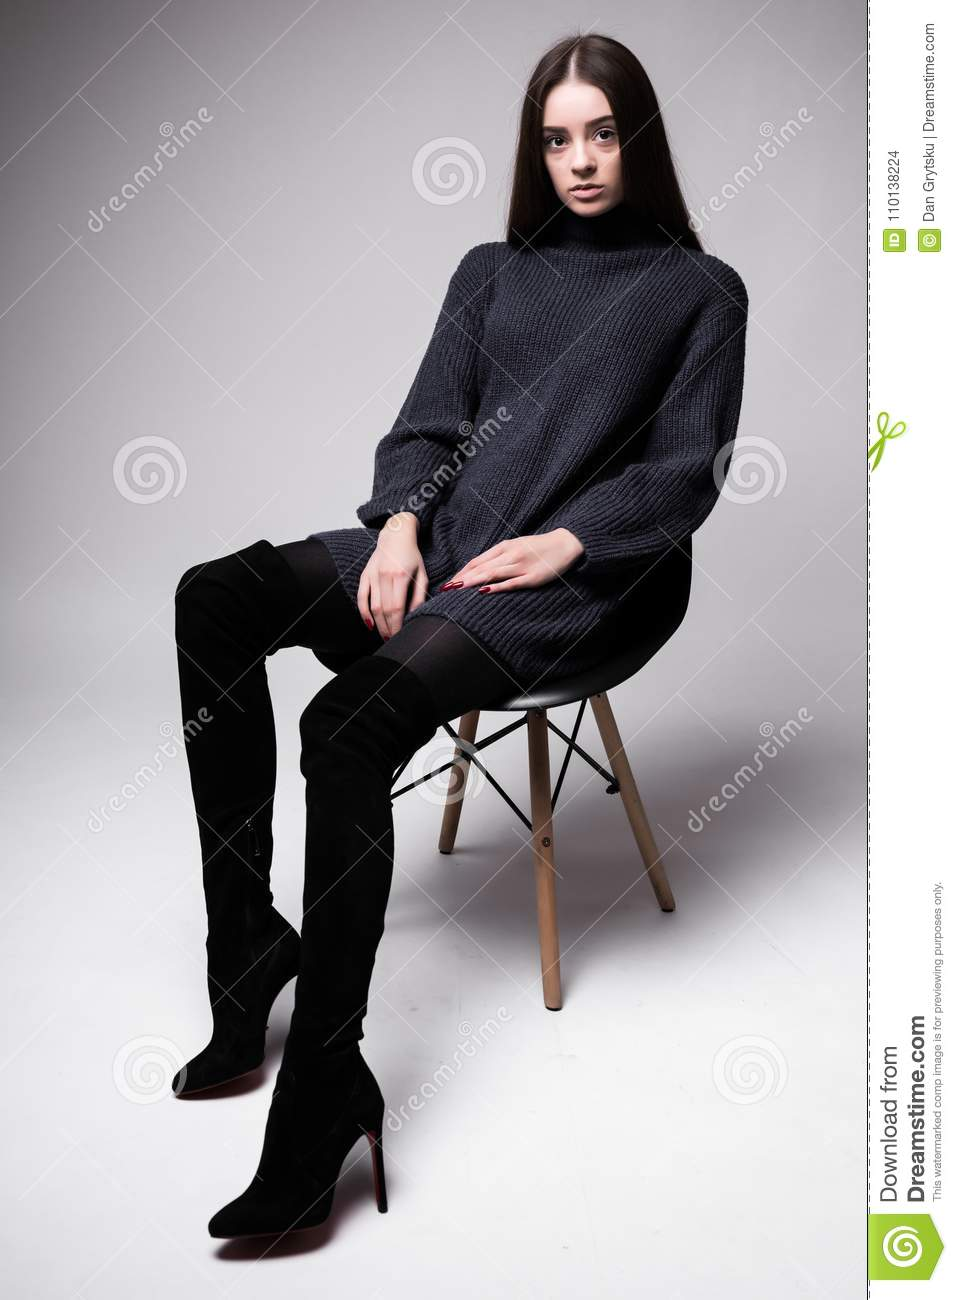 High fashion portrait of young elegant woman sittung on chair black clothes isolated on white background